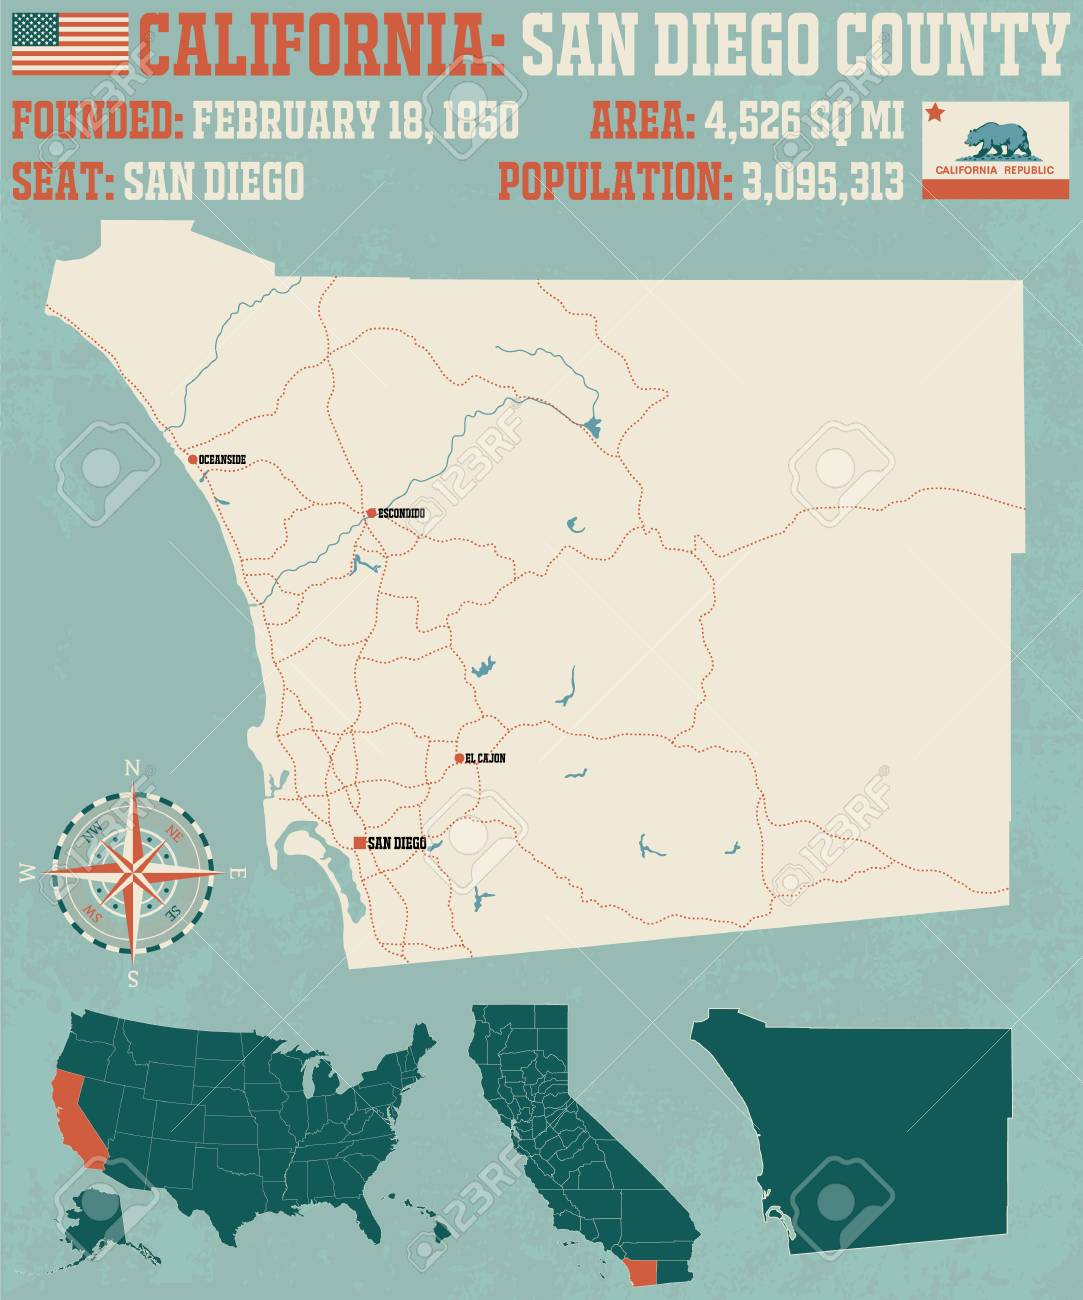 California Map San Diego County.Large And Detailed Map Of San Diego County In California